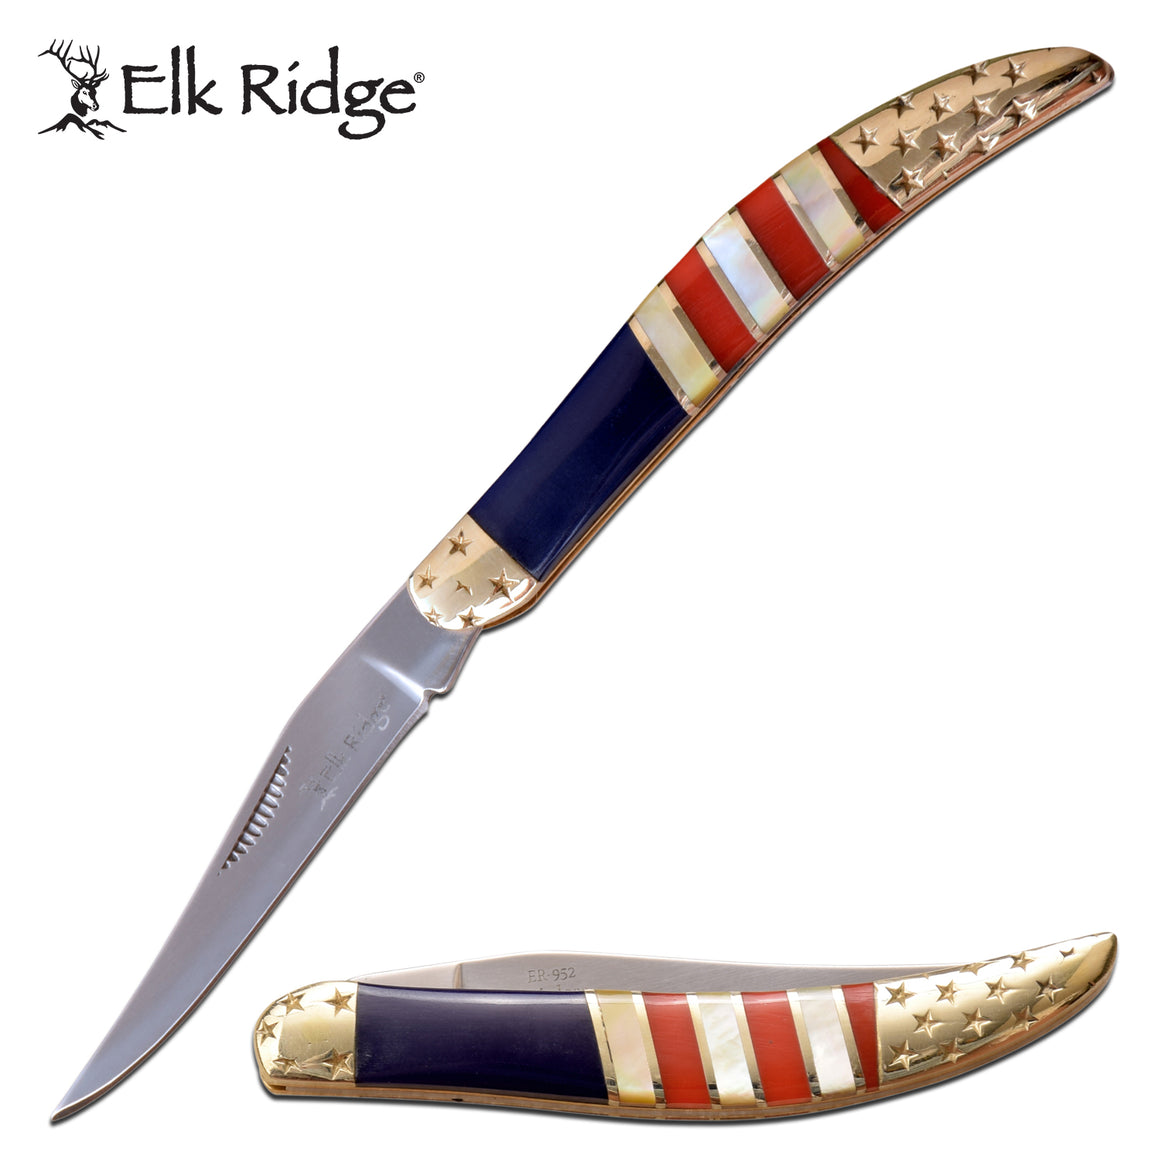 Elk Ridge ER-952AF Folding Knife